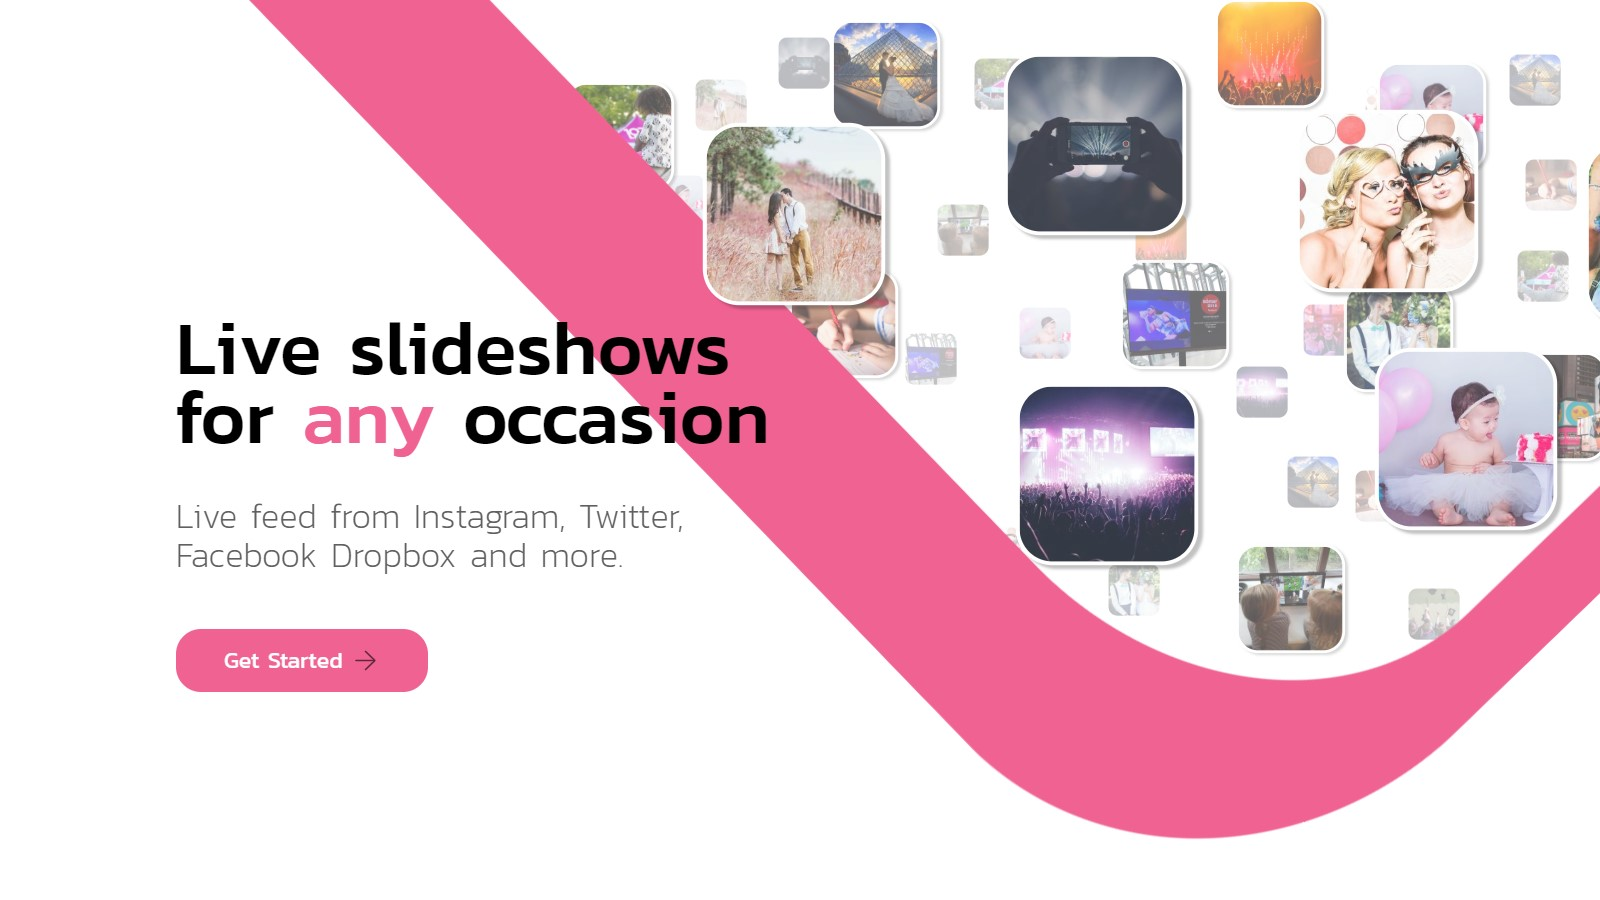 Live slideshows for any occasion - Slidesome